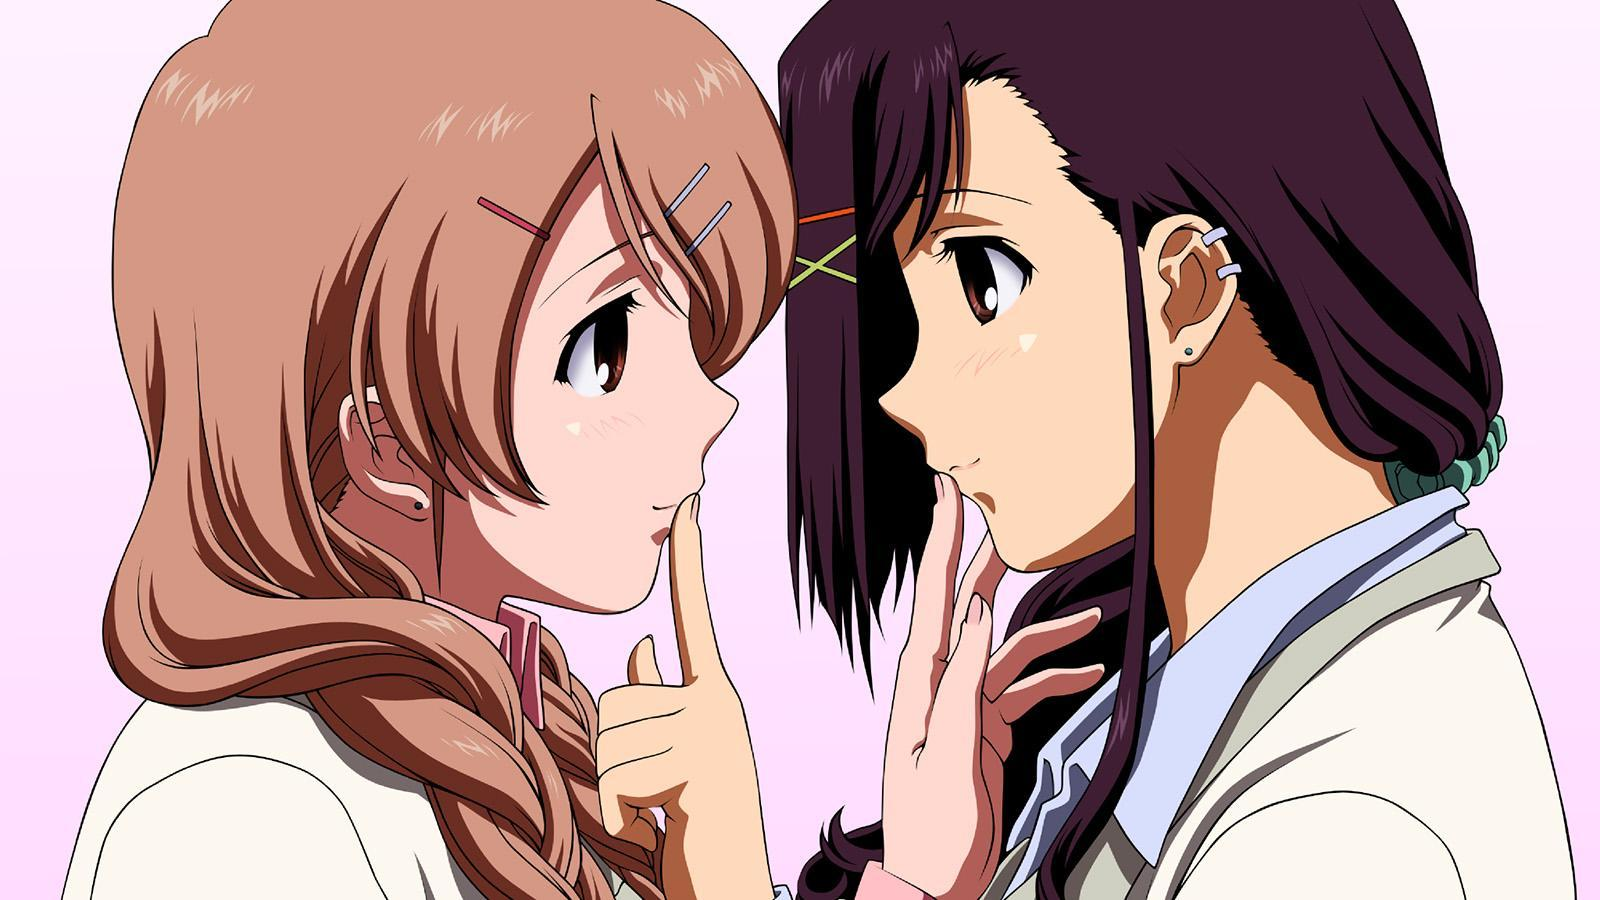 What-Is-The-Meaning-Of-The-Term-Yuri-In-Anime?